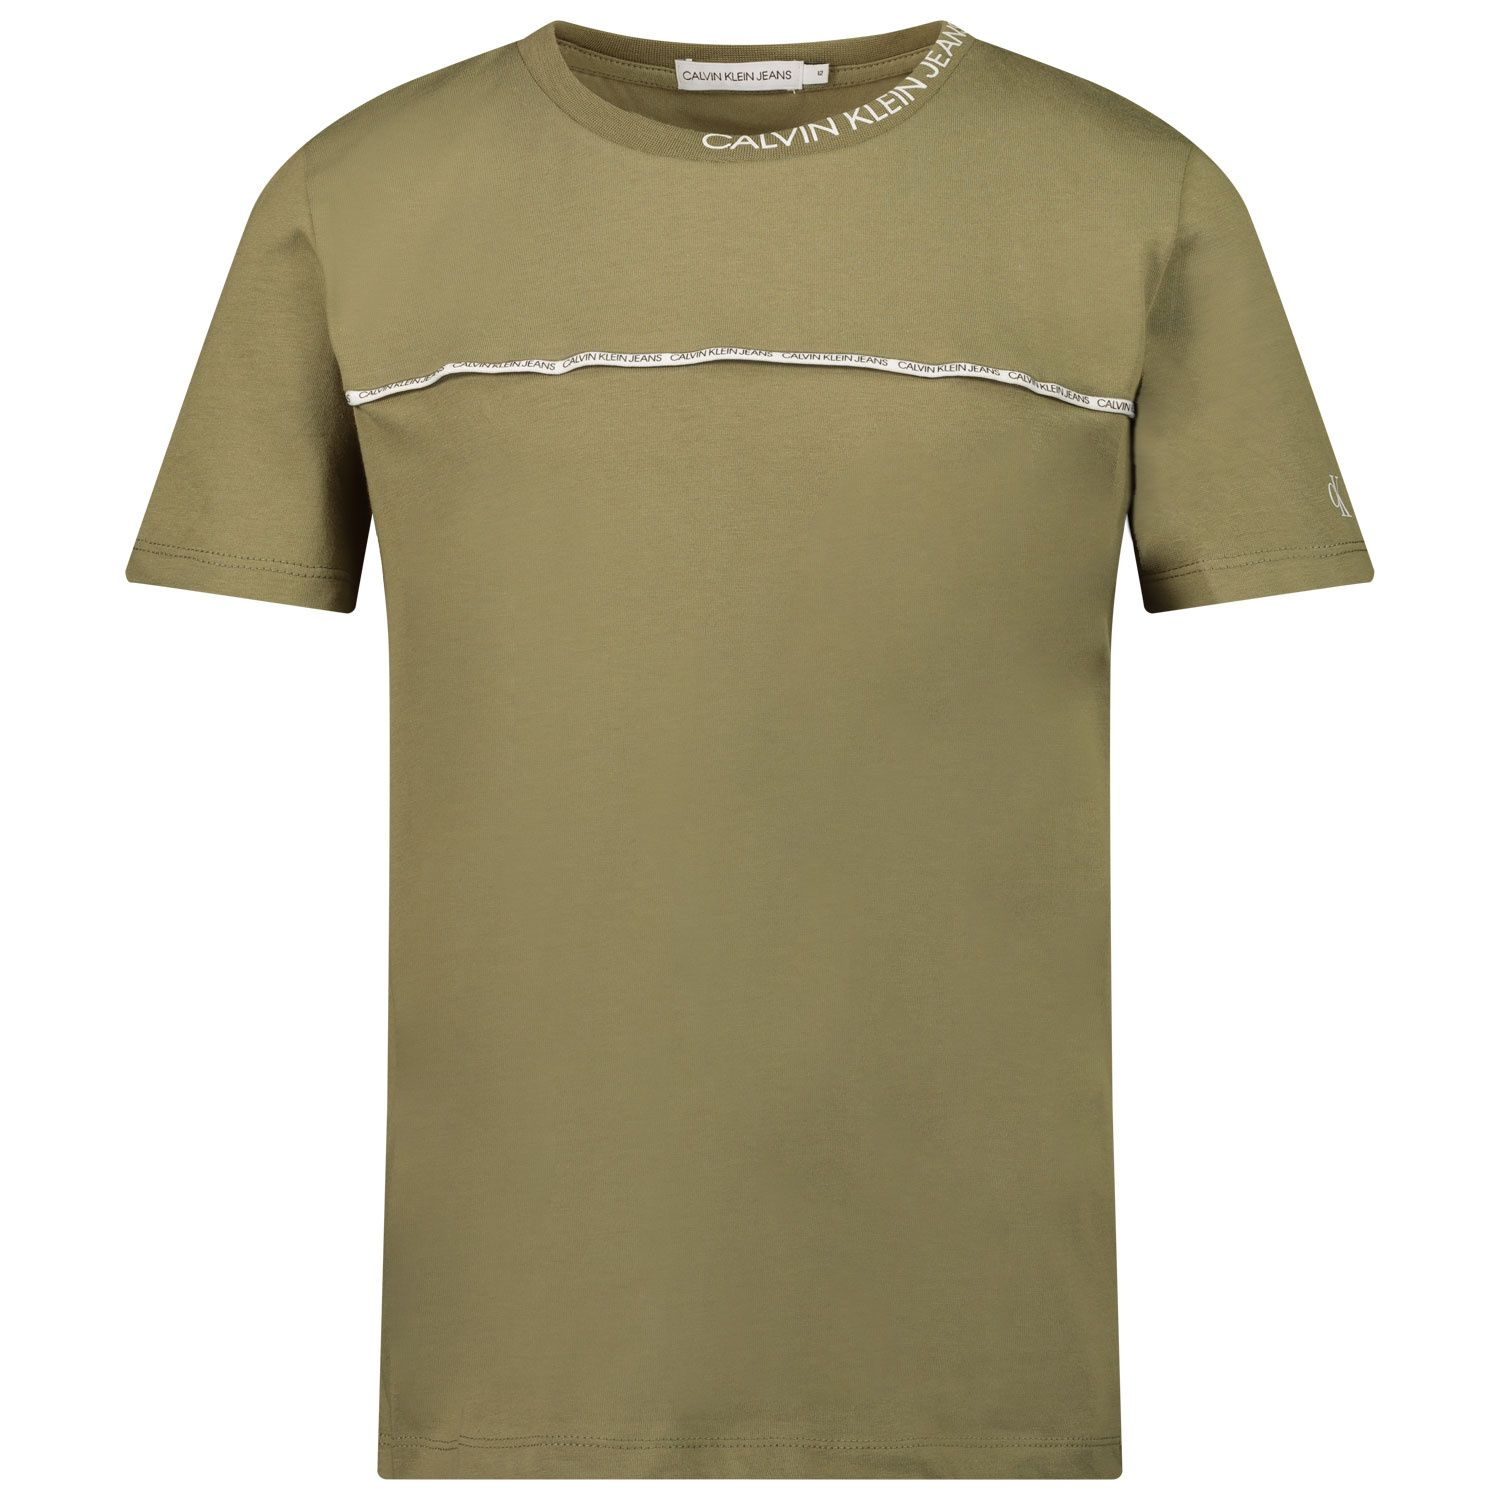 Picture of Calvin Klein IB0IB00695 kids t-shirt olive green